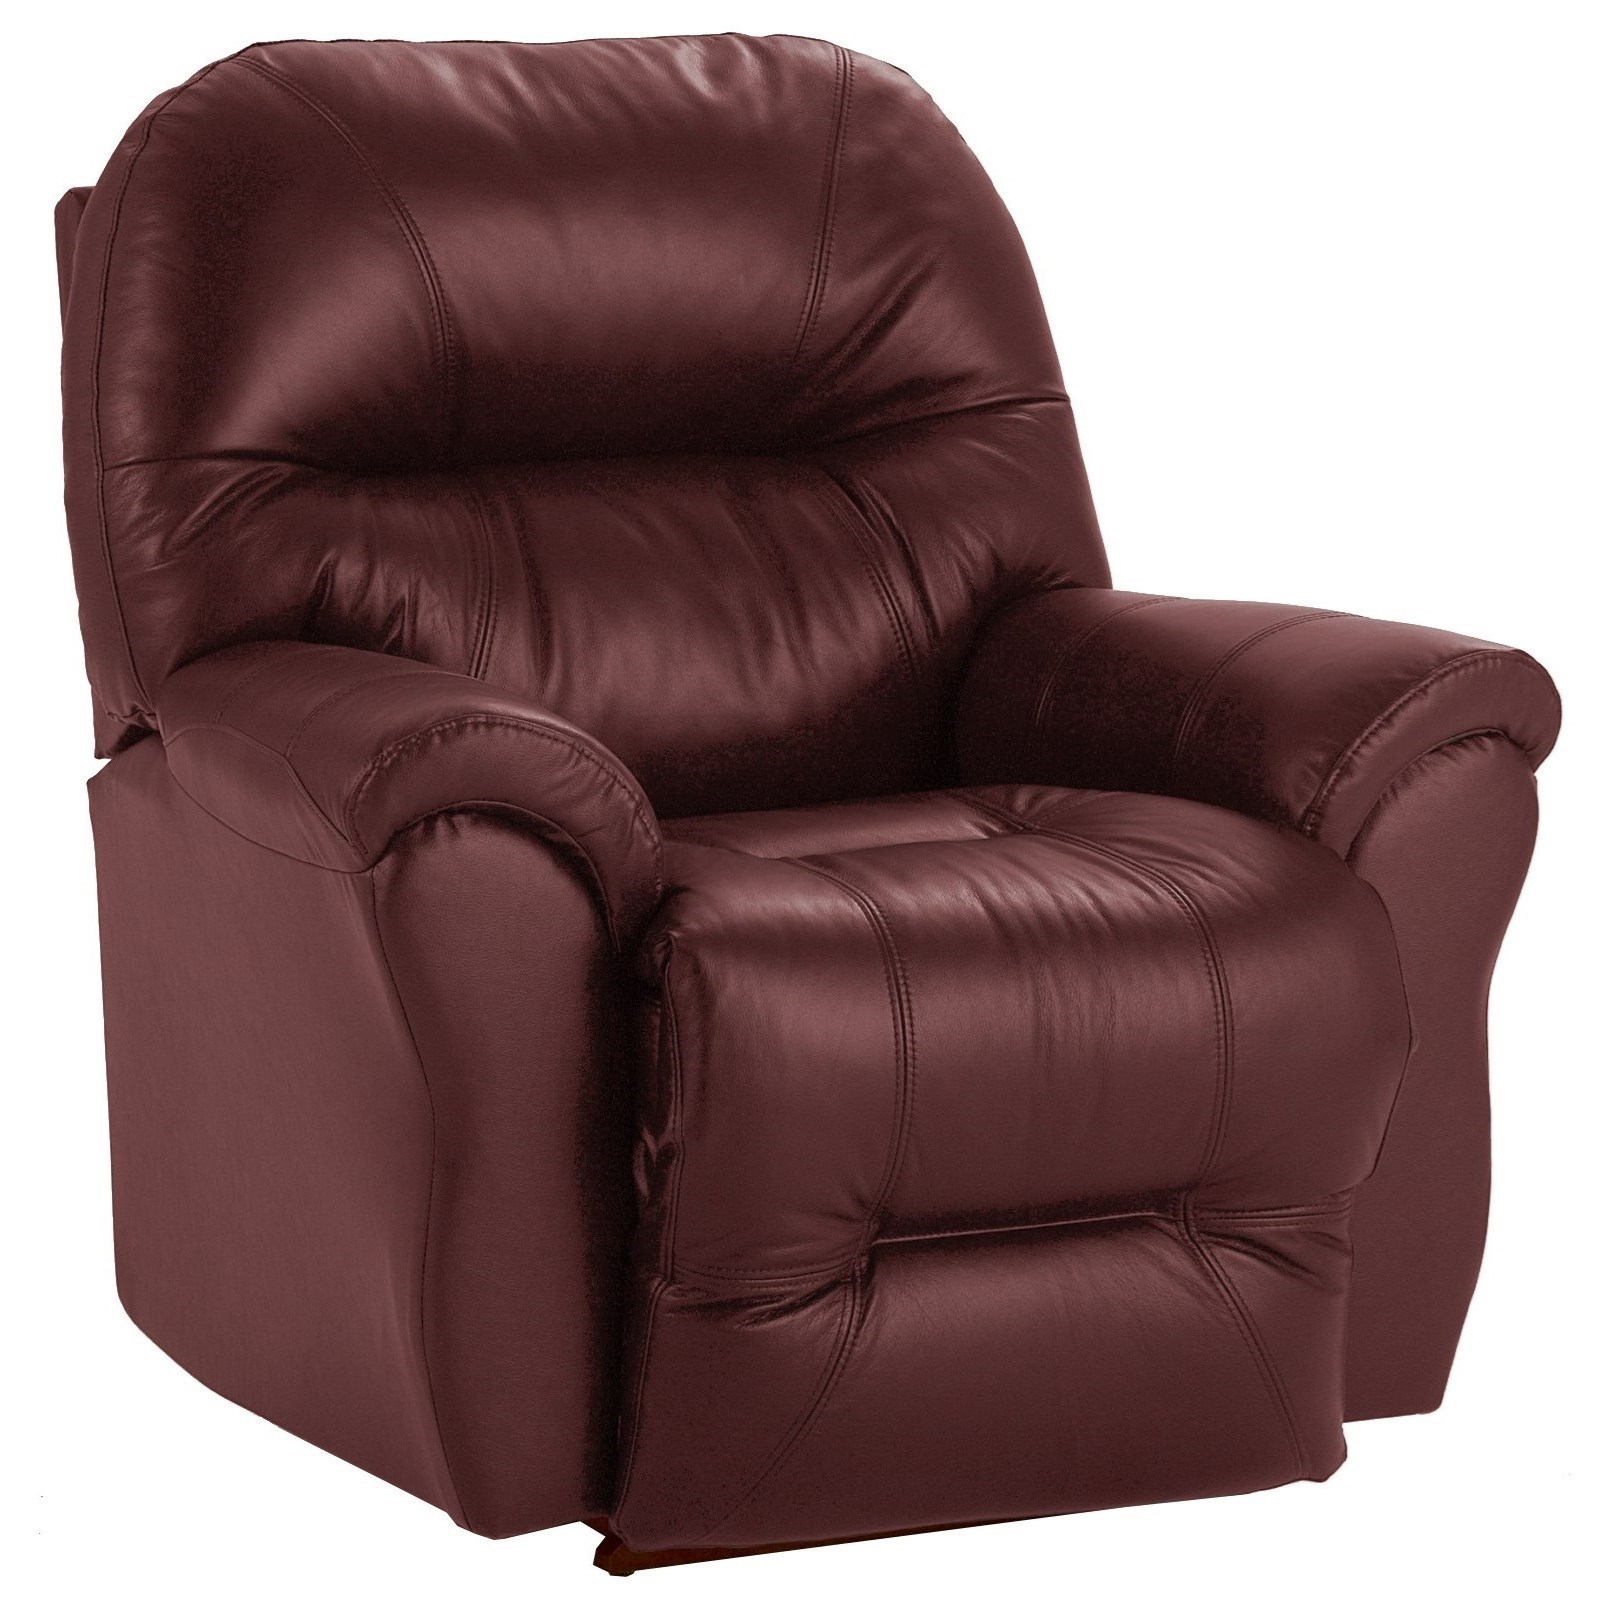 Medium Recliners Bodie Power Rocker Recliner by Best Home Furnishings at Virginia Furniture Market